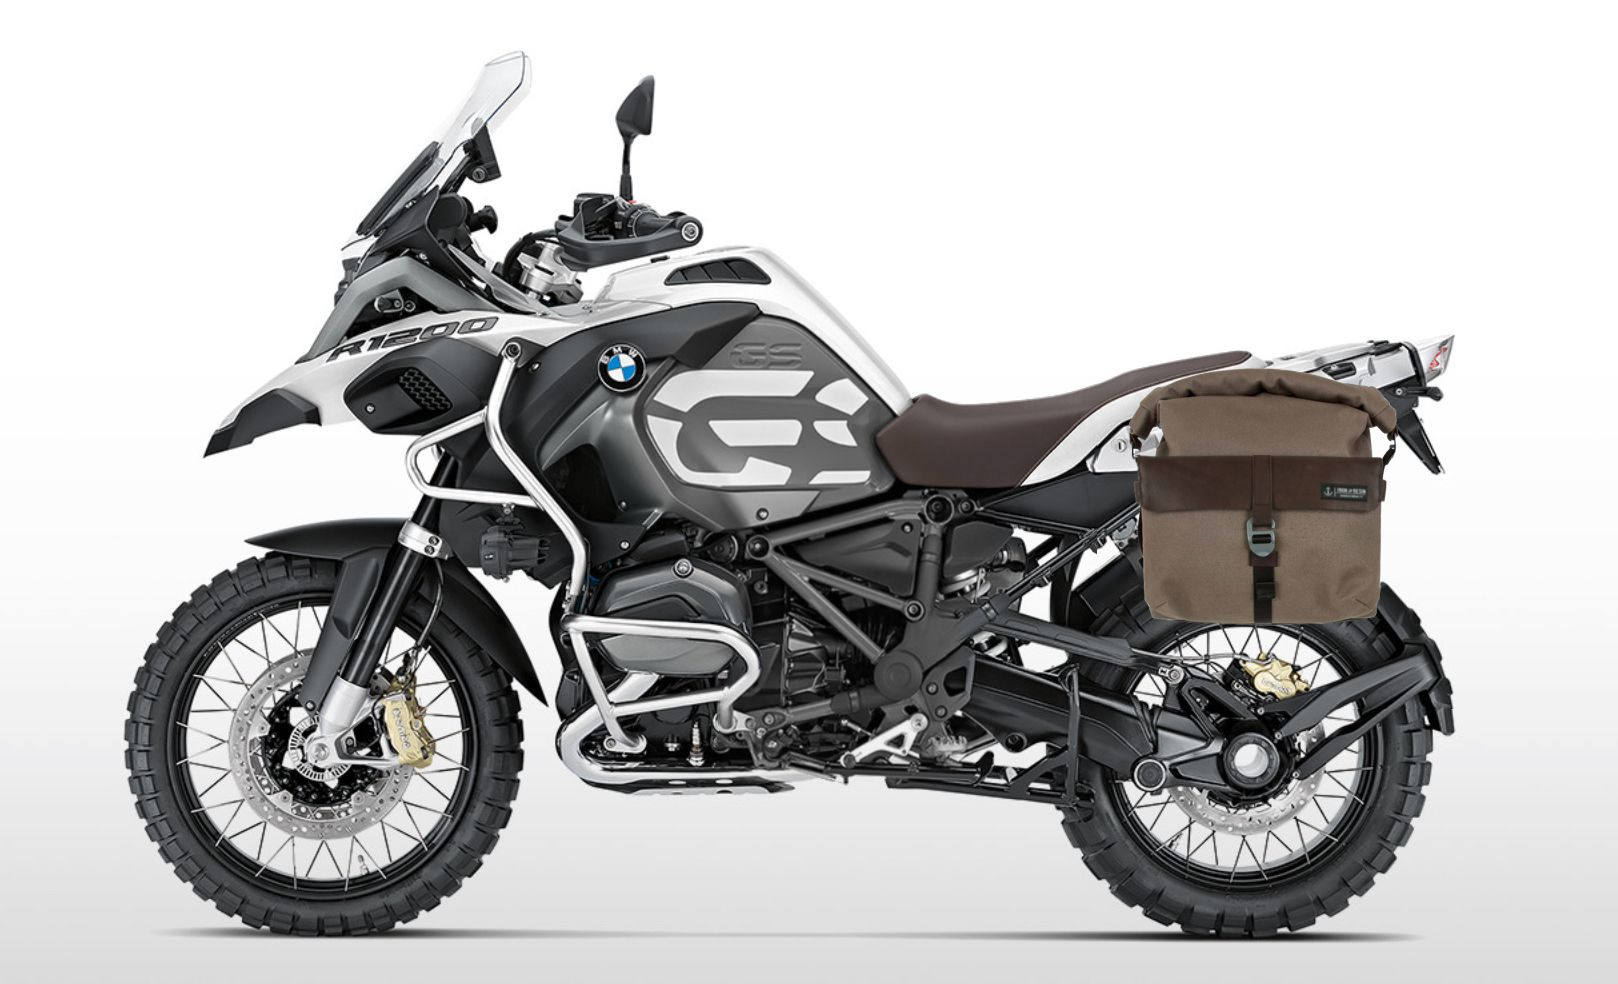 Bmw R 1200 Gs Adventure Havana Edition With Images Bmw